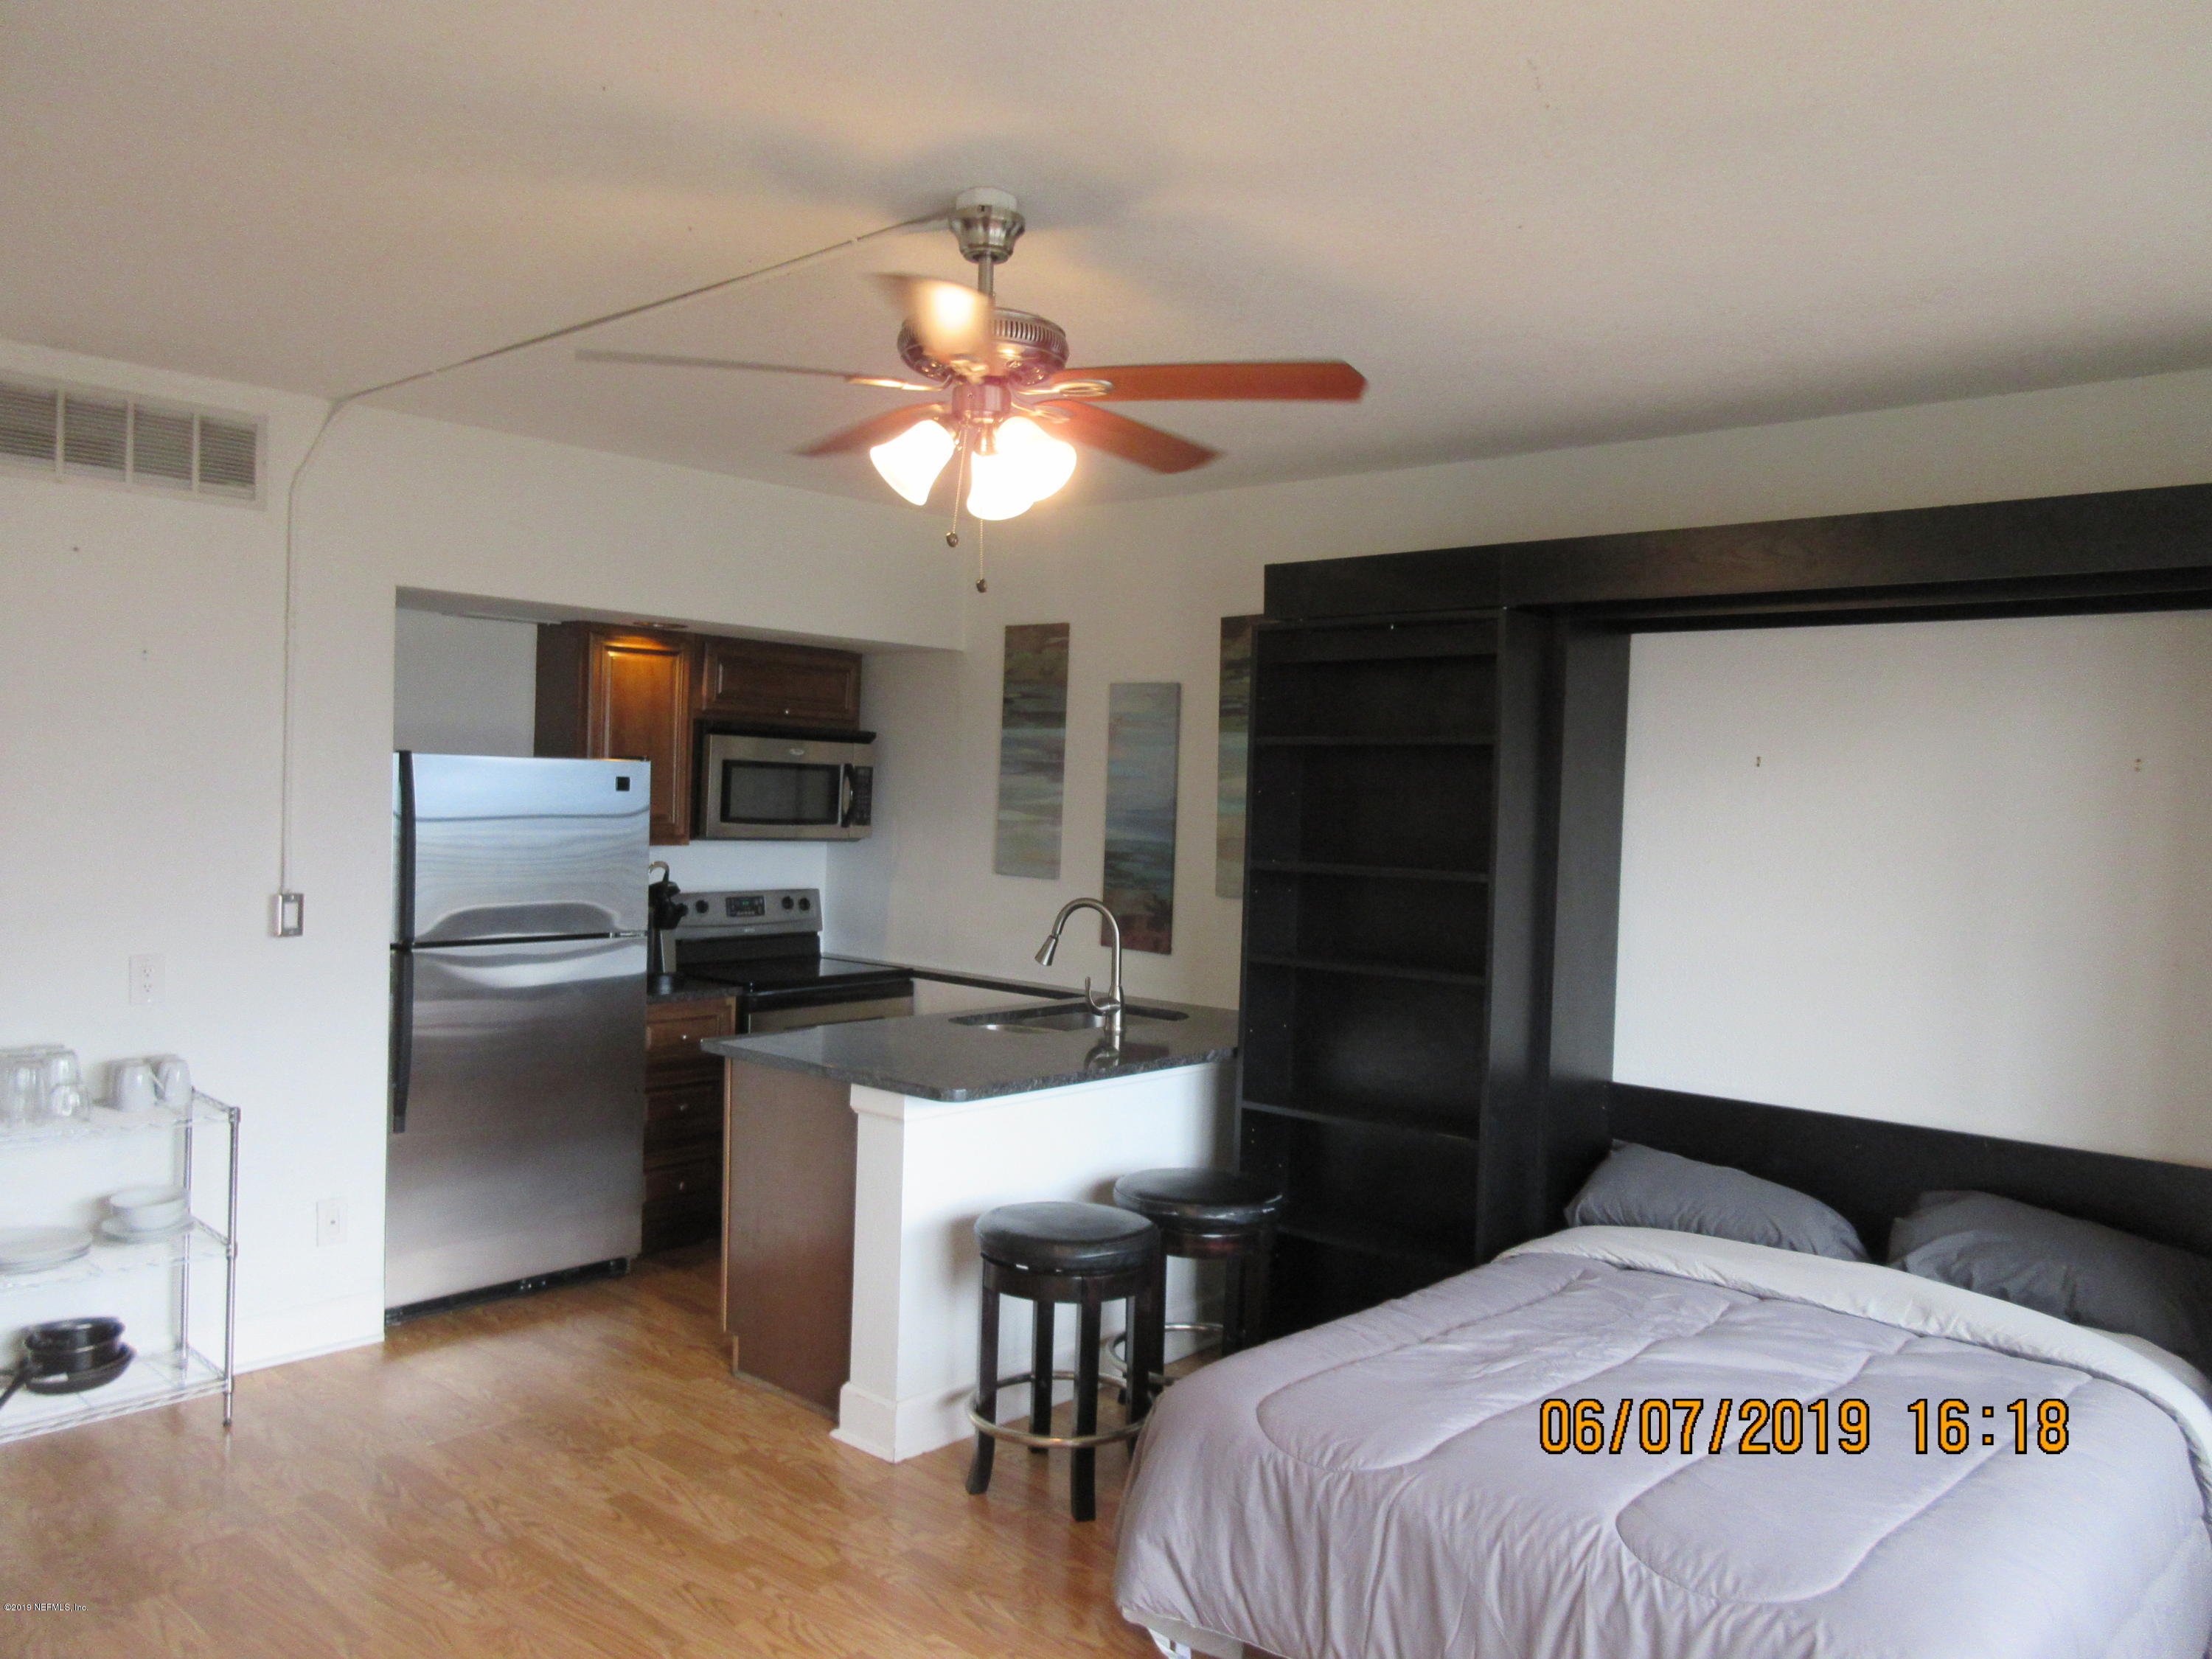 311 ASHLEY, JACKSONVILLE, FLORIDA 32202, 1 Bedroom Bedrooms, ,1 BathroomBathrooms,Condo,For sale,ASHLEY,1000296